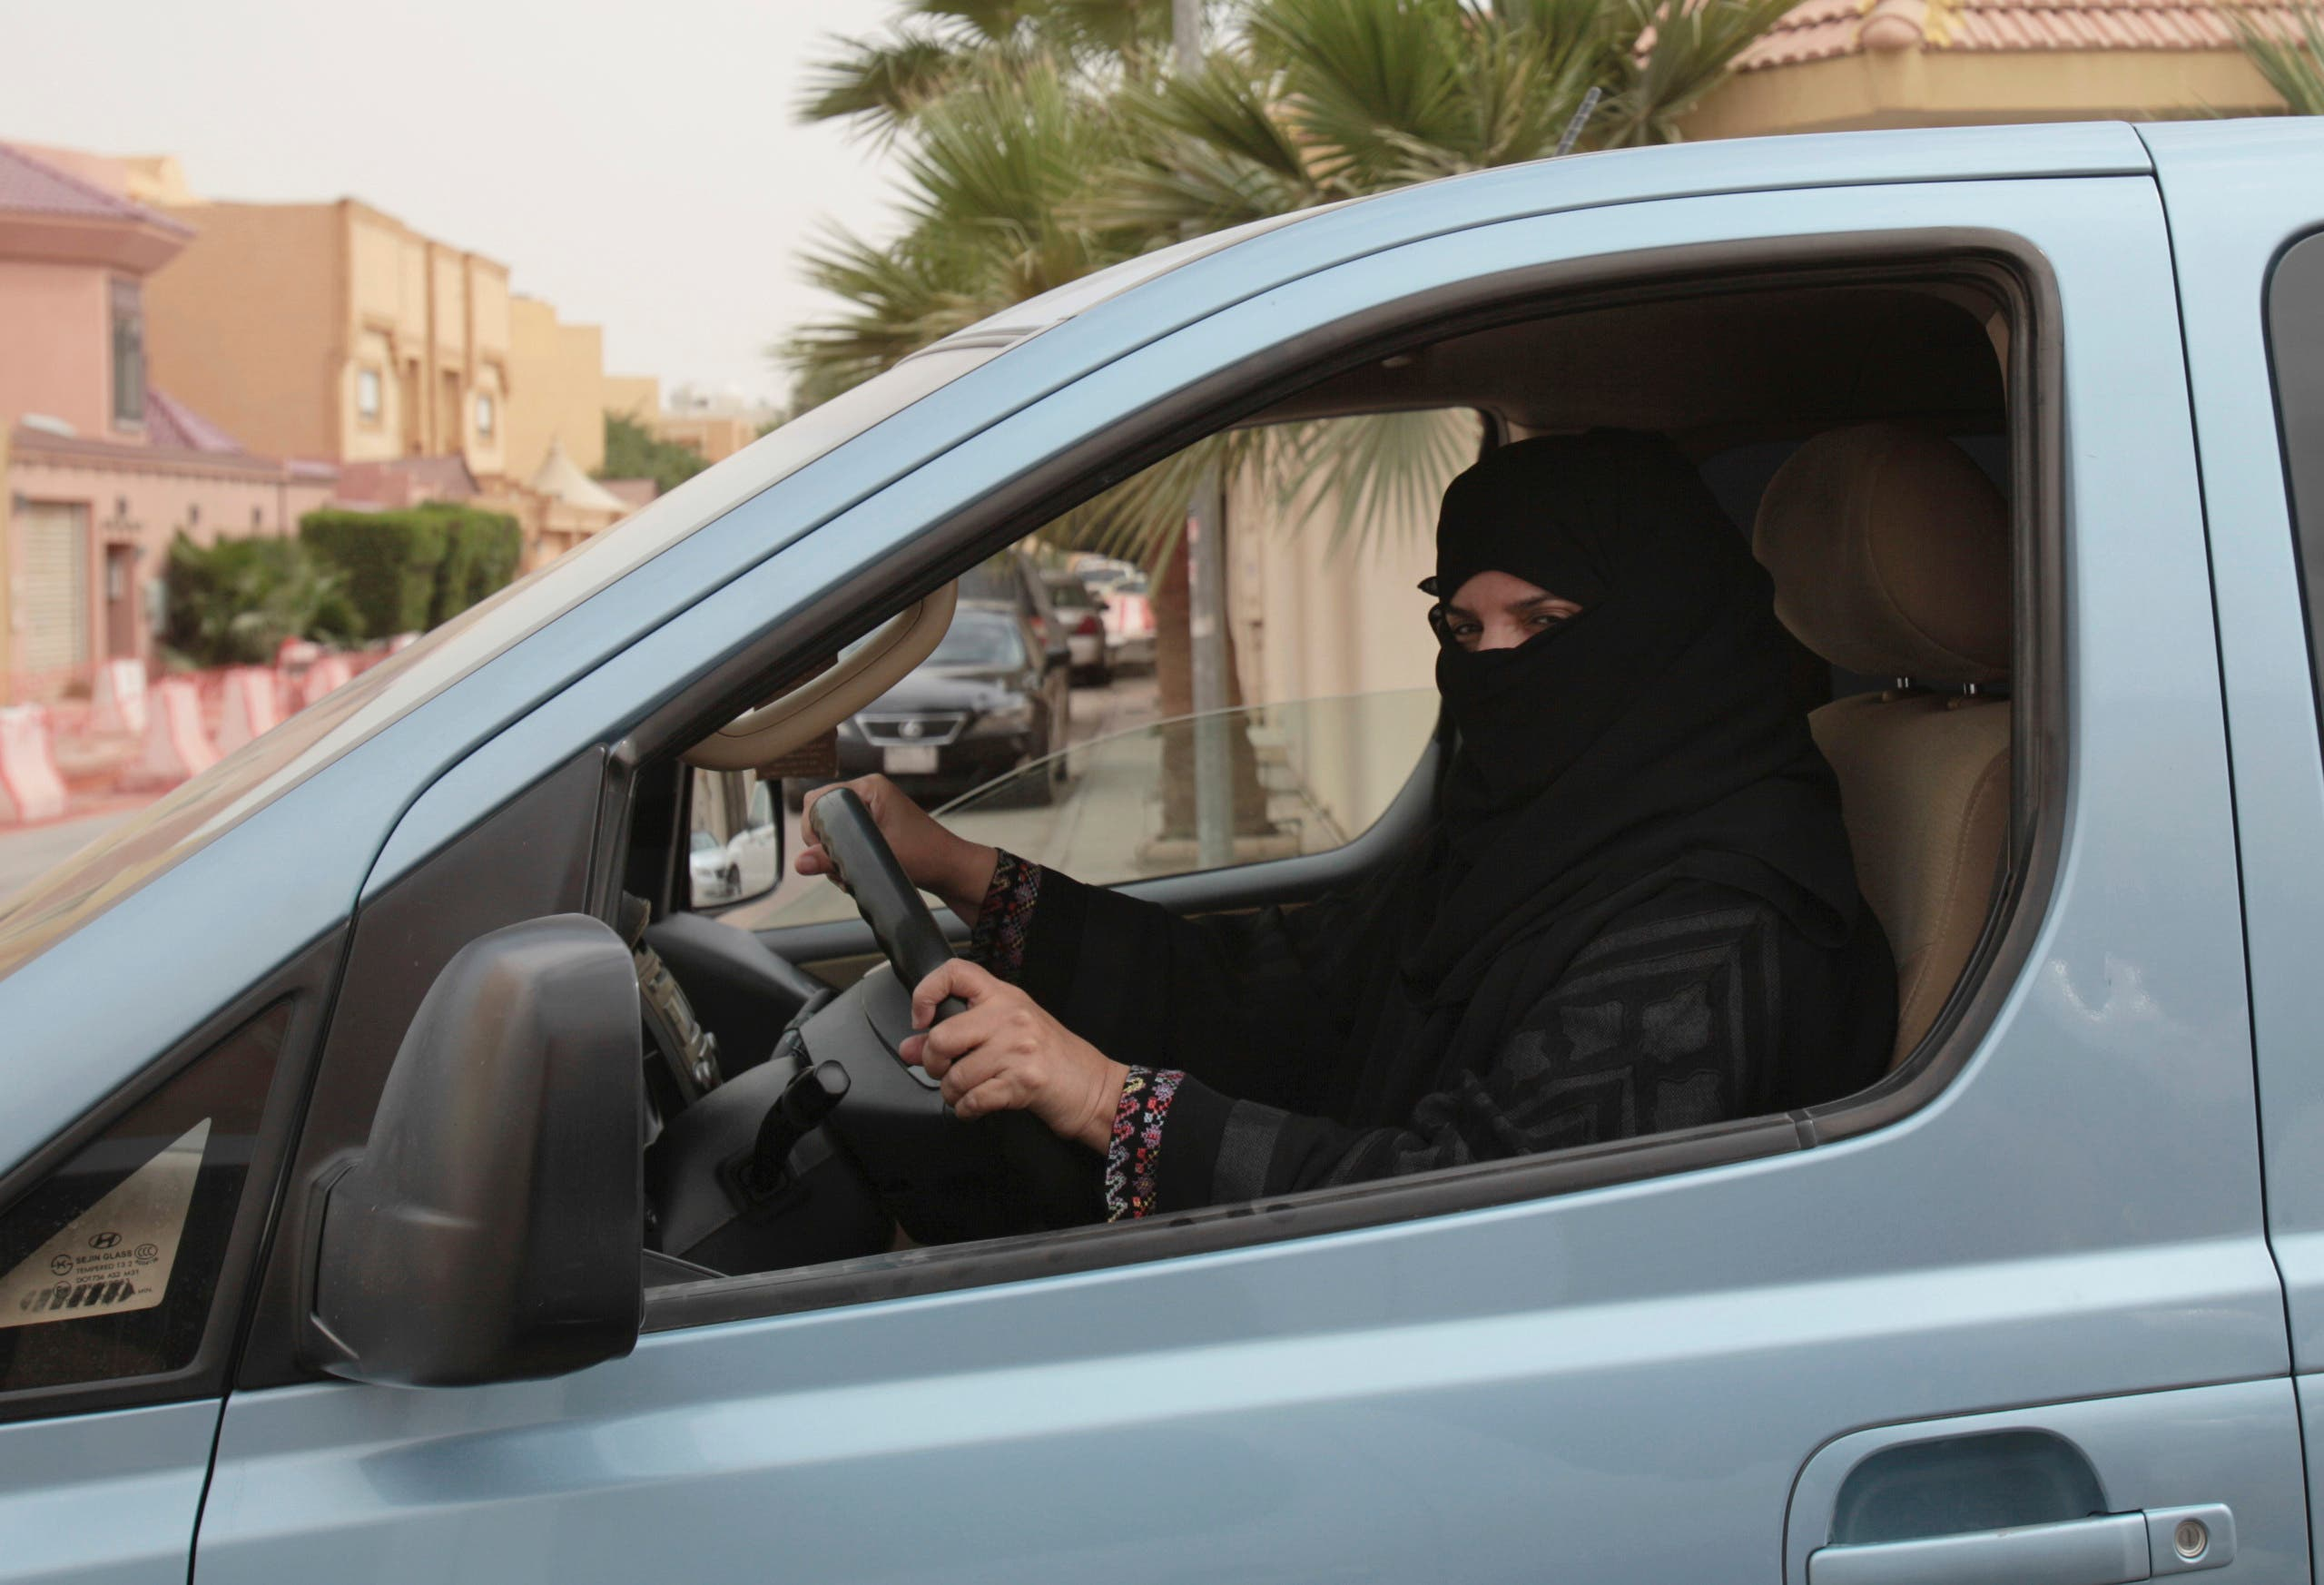 Saudi Arabia authorities announced Tuesday Sept. 26, 2017, that women will be allowed to drive for the first time AP